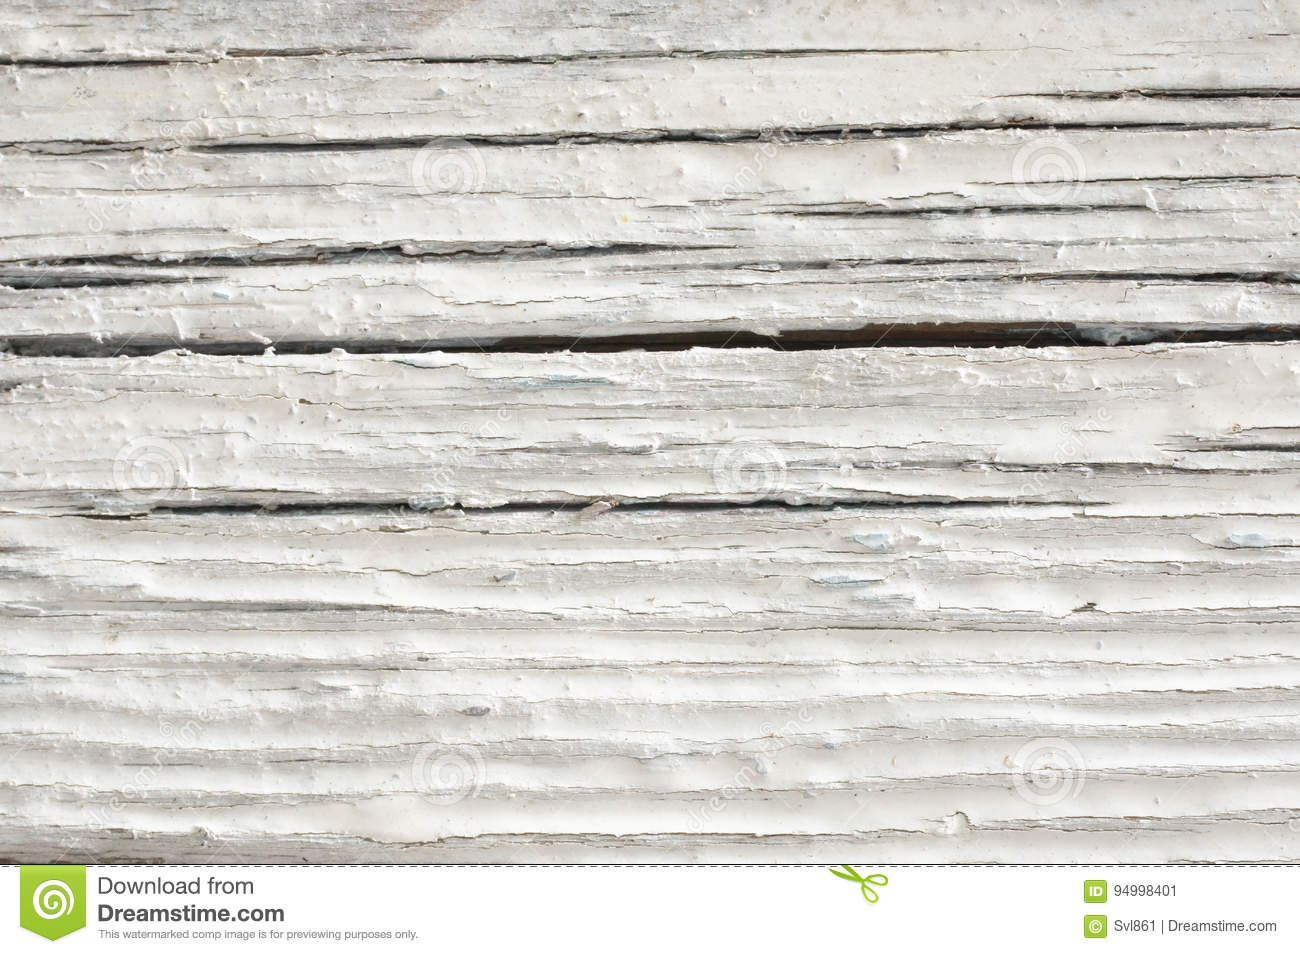 Extreme Distressed White Painted Wood Texture Close Up As Background